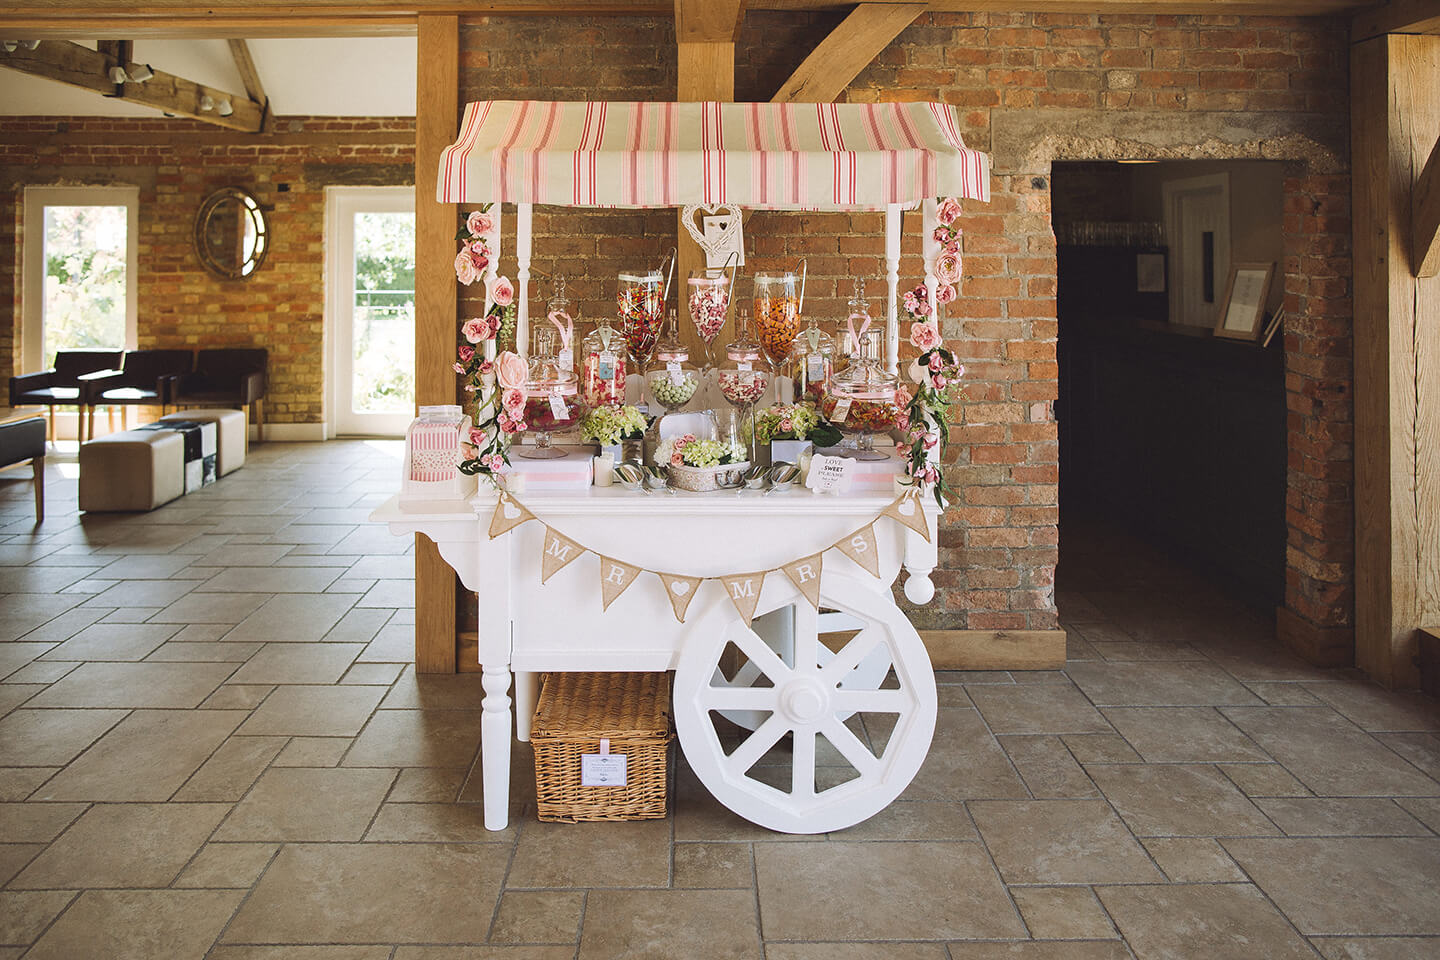 Guests were treated to a white sweet cart in the Moat Barn – wedding ideas